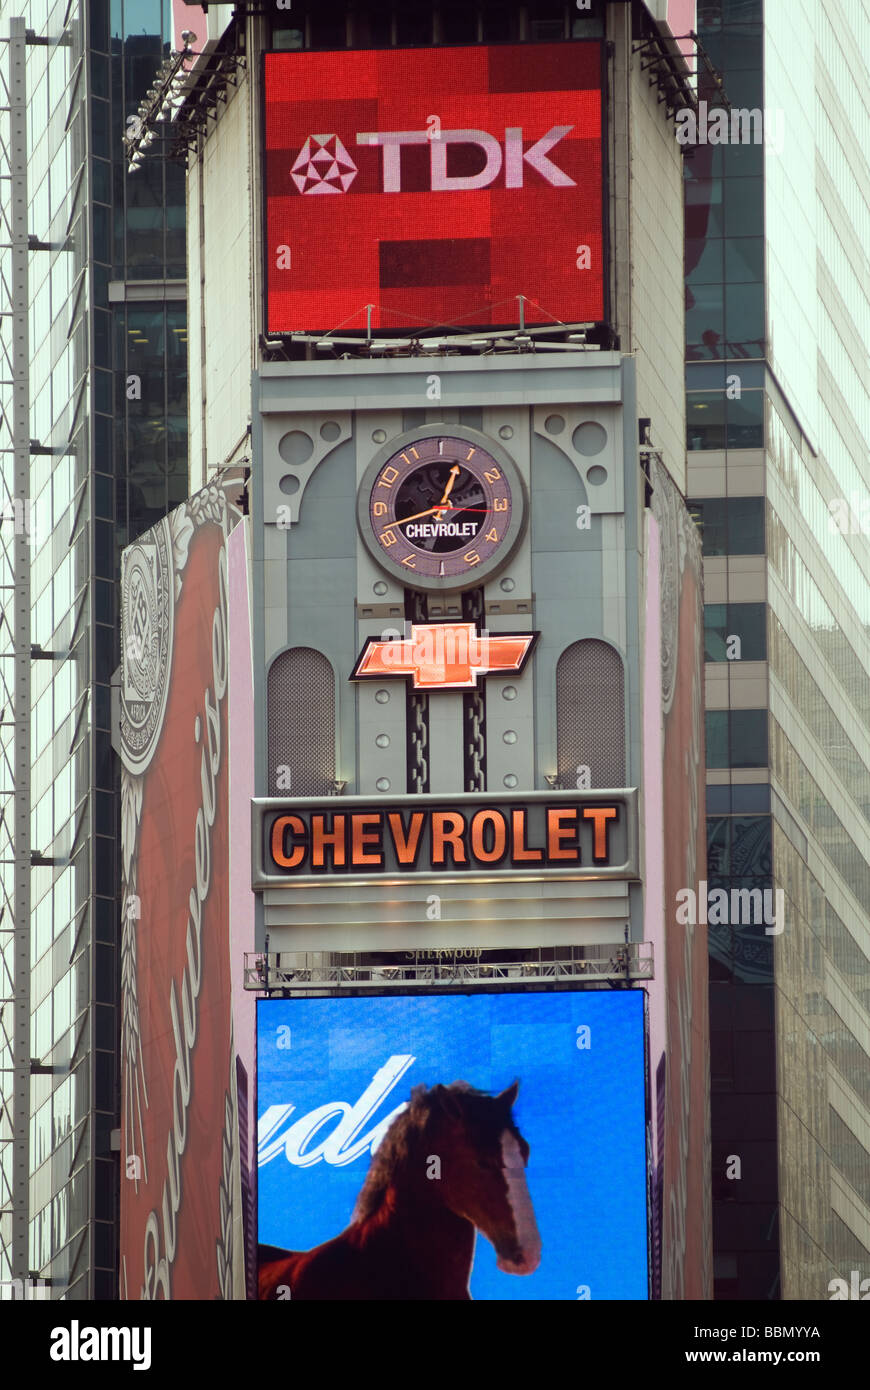 Advertising for General Motors Chevrolet brand is seen in Times Square - Stock Image